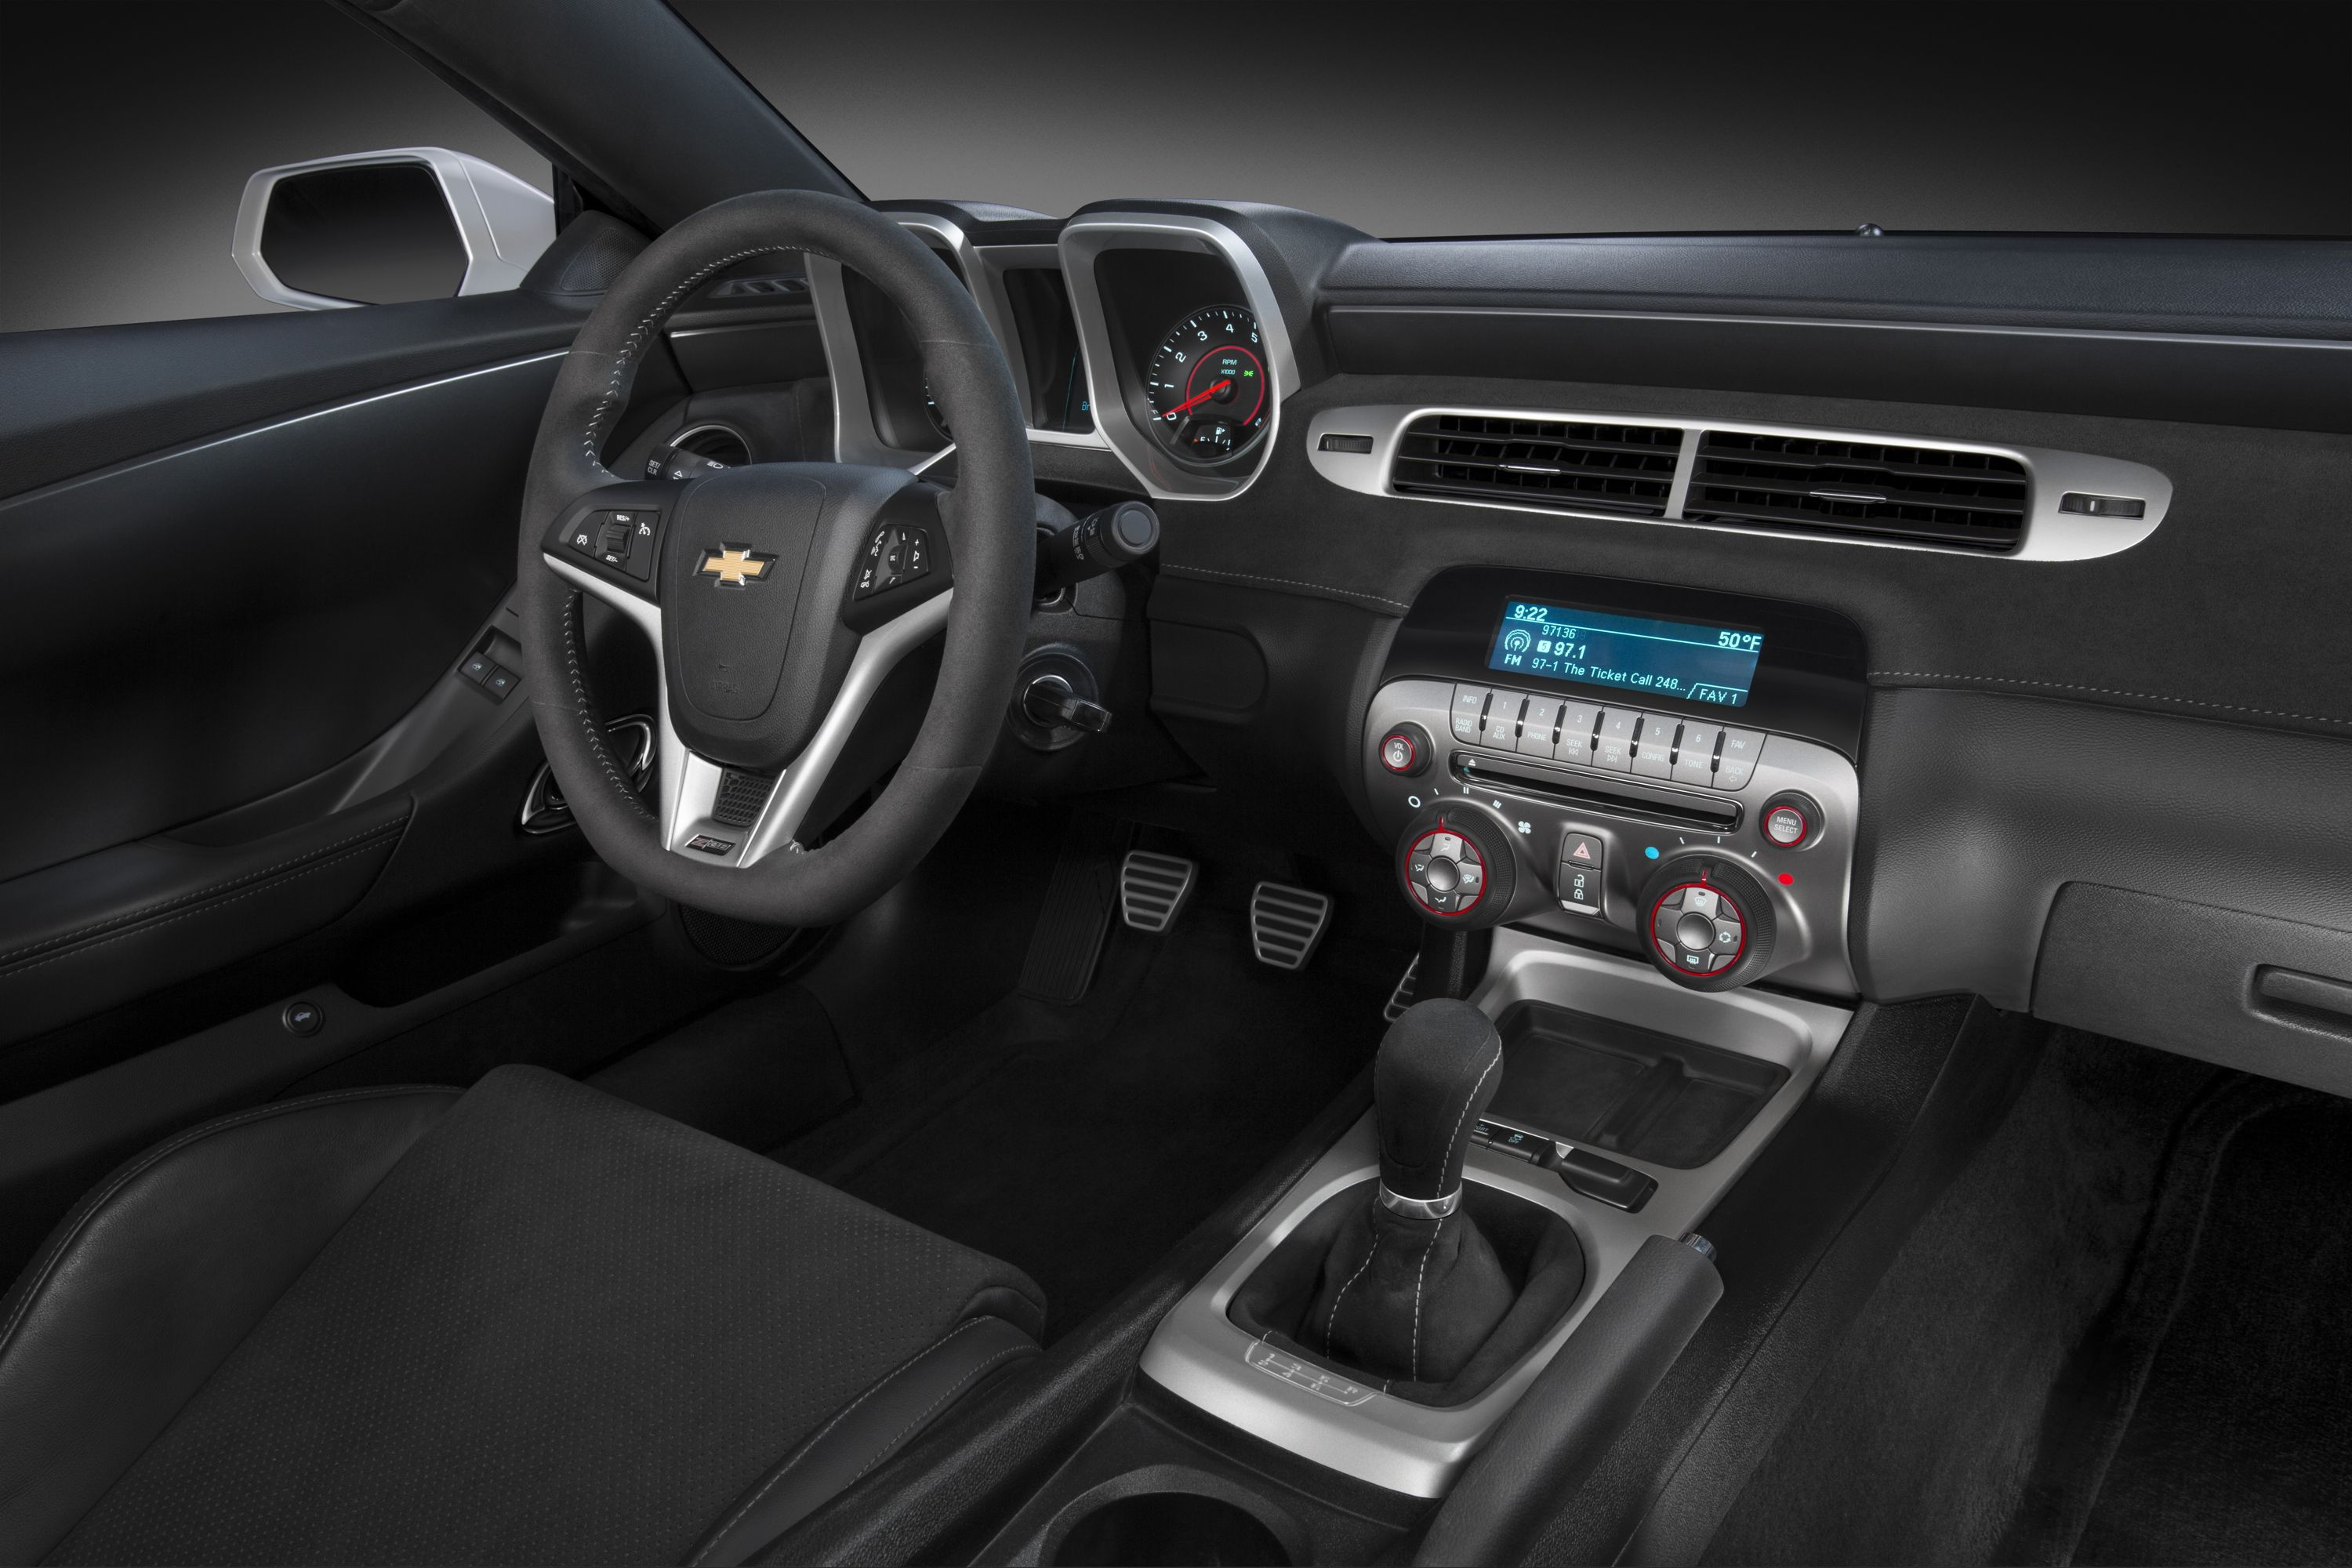 2015 Chevrolet Camaro Z28 interior front seat from passenger side